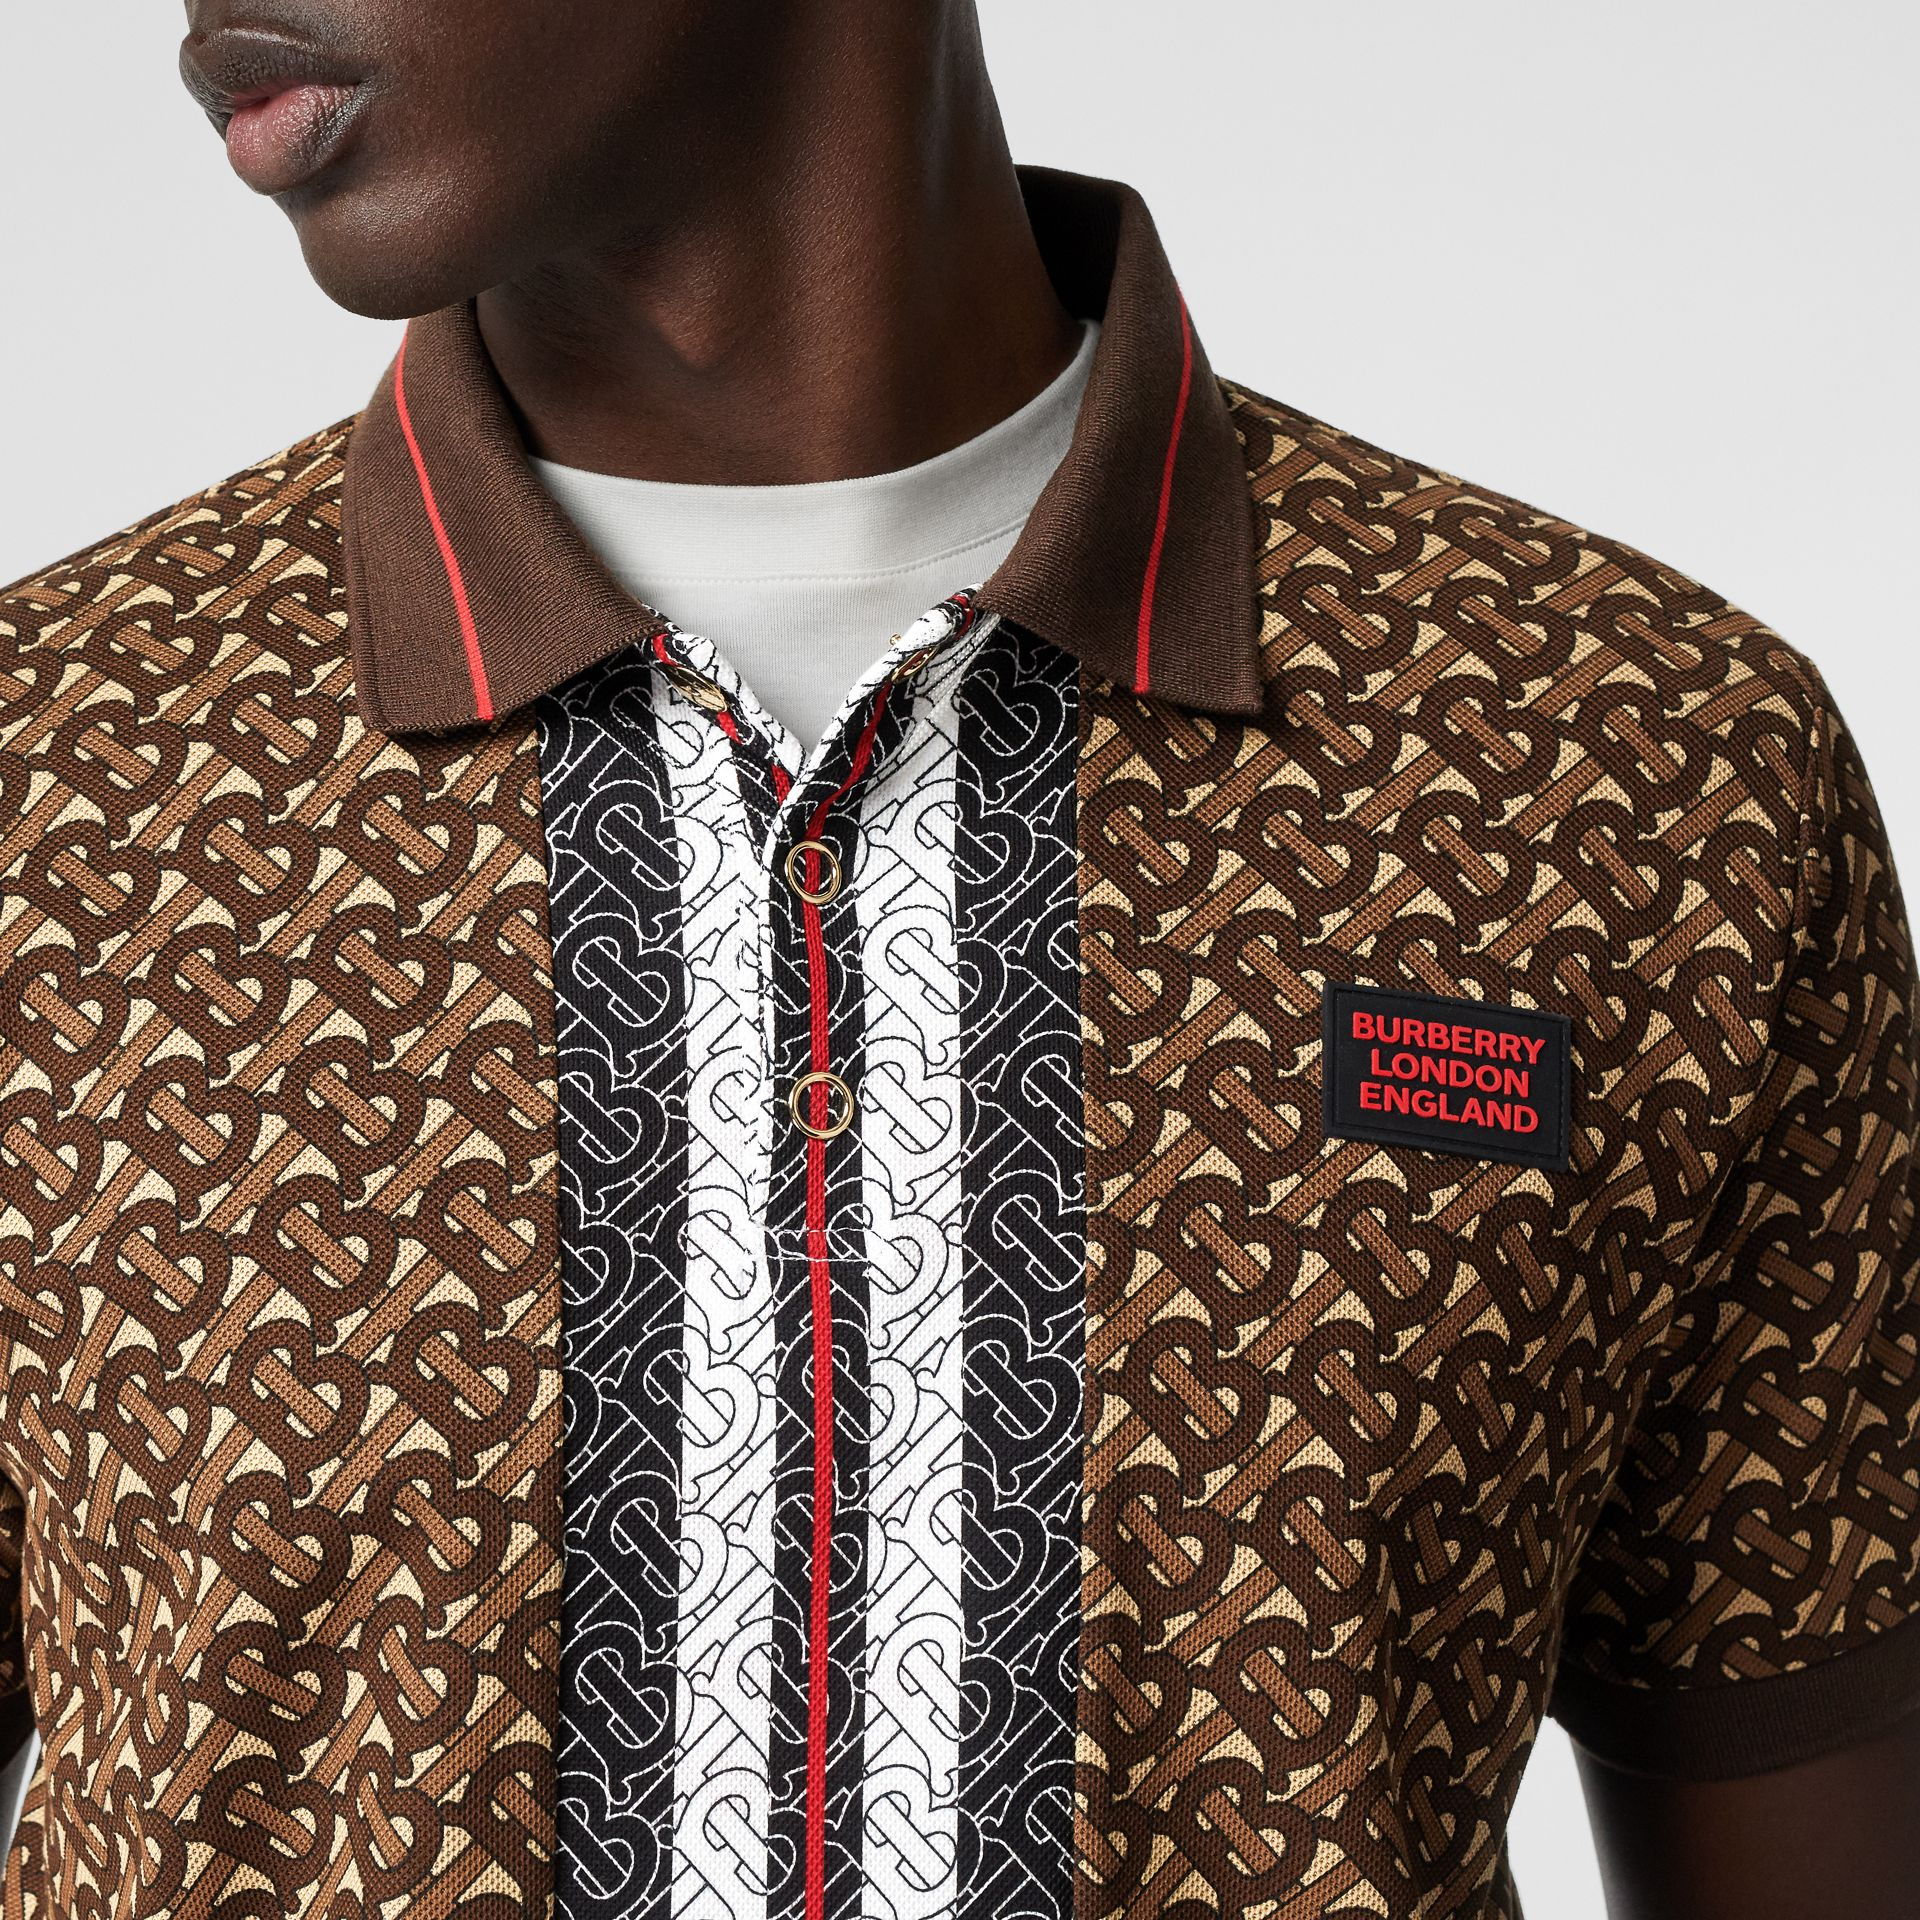 Monogram Stripe Print Cotton Piqué Polo Shirt in Bridle Brown - Men | Burberry - gallery image 4